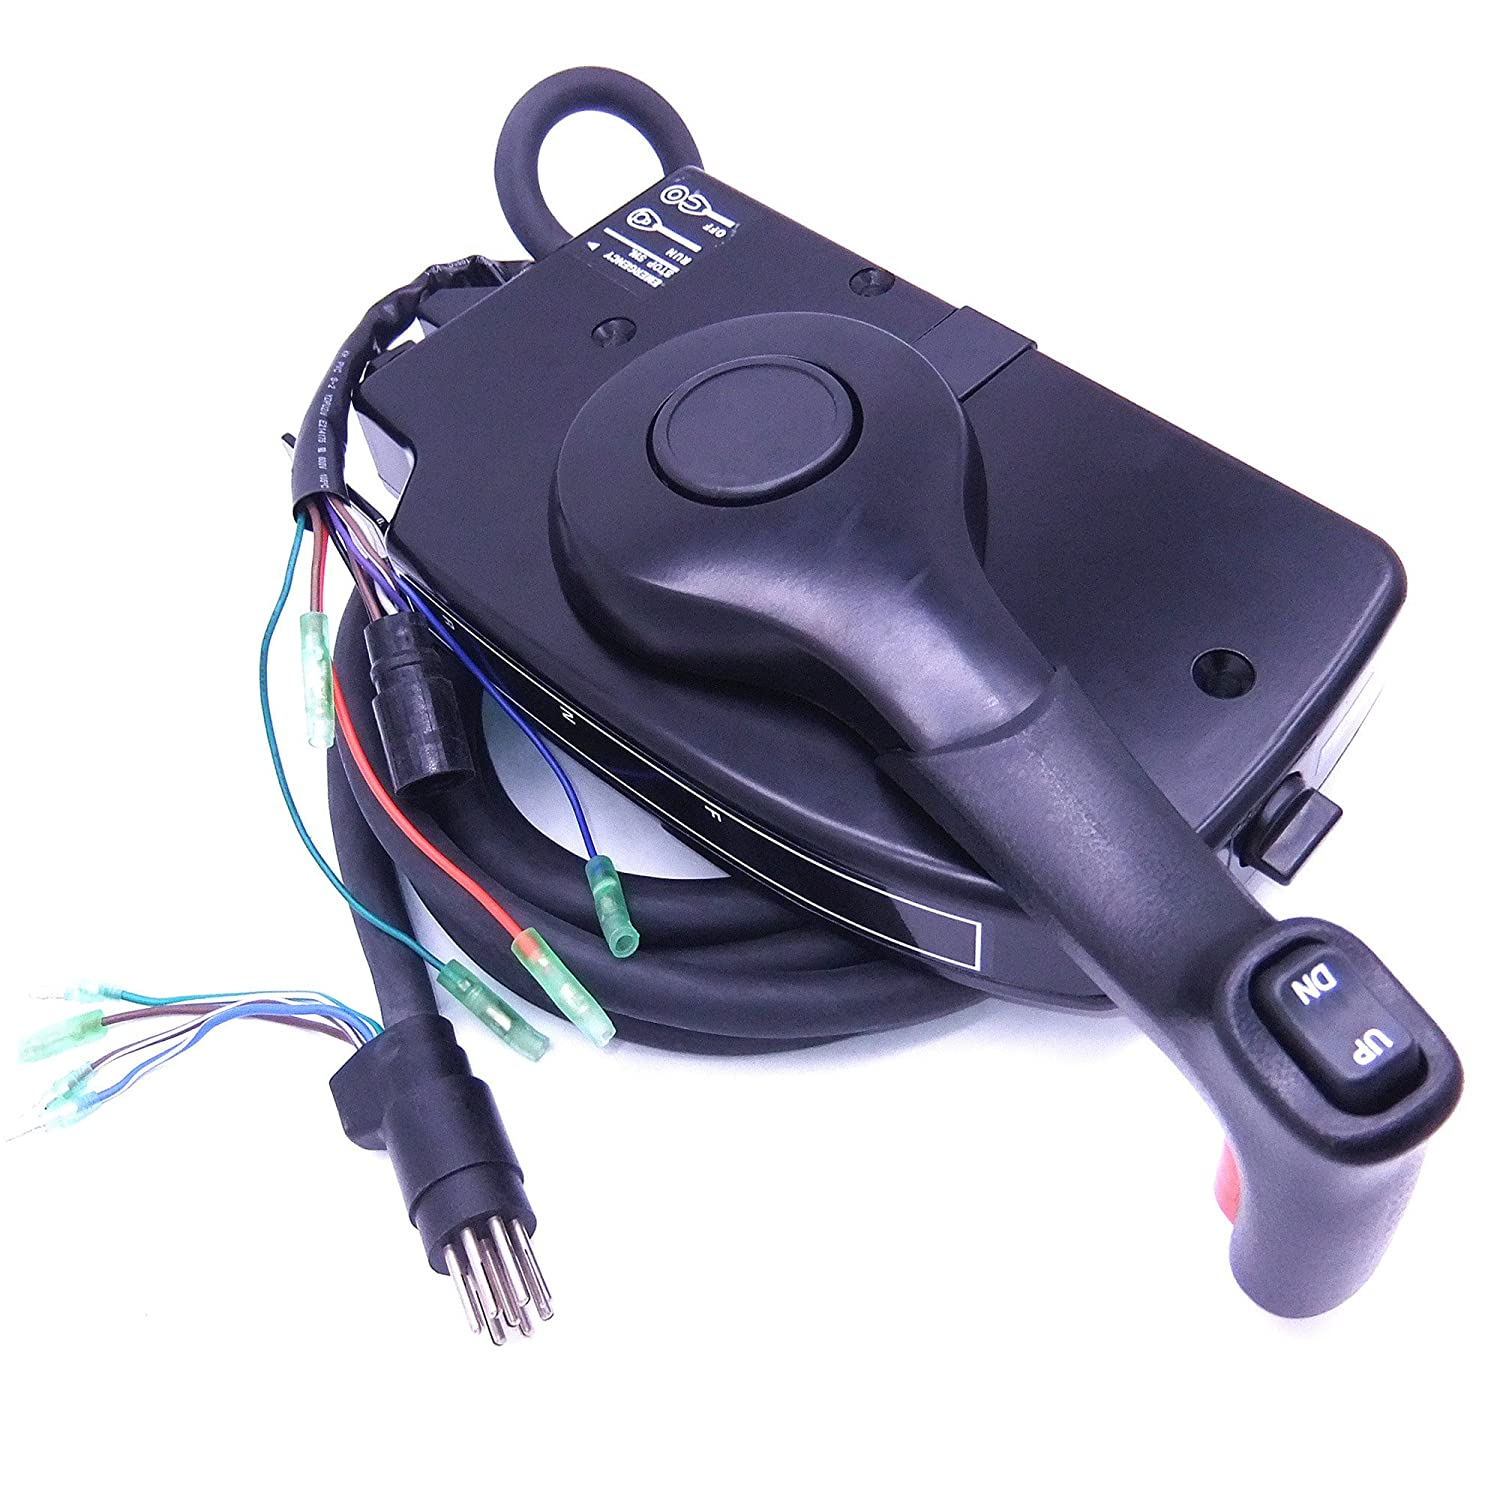 881170a15 Boat Motor Side Mount Remote Control Box With 70 Hp Mercury Outboard Wiring Diagram 8 Pin For Engine Pt Right Hand Sports Outdoors